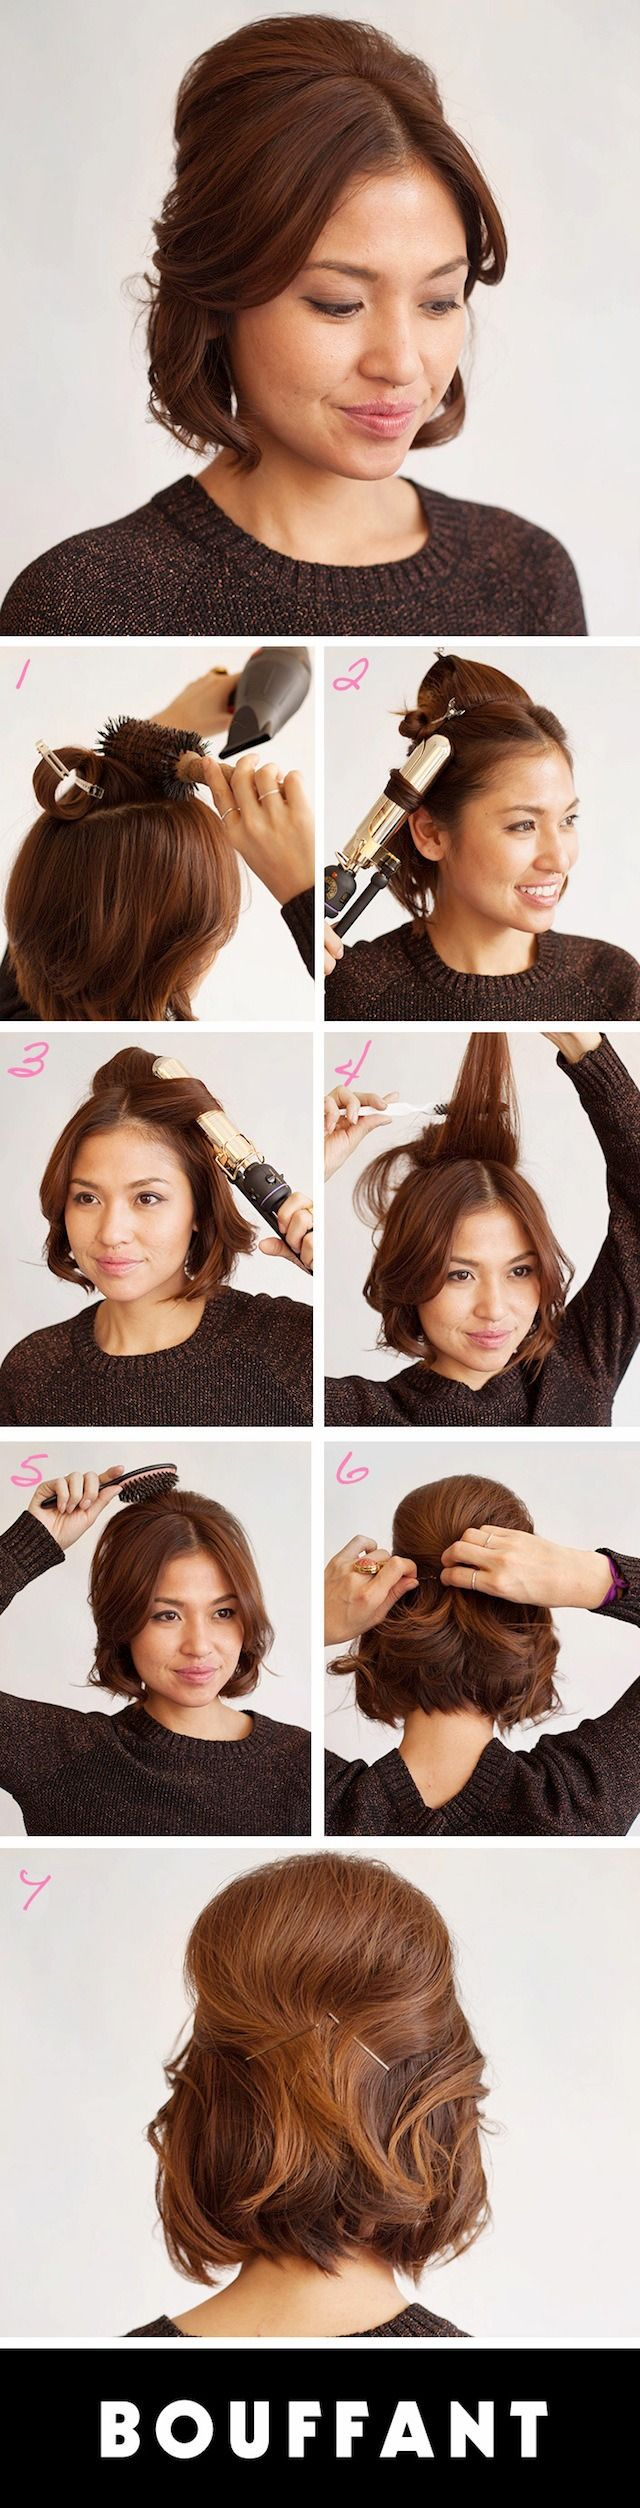 For my friends with short hair. This style is super simple and cute!